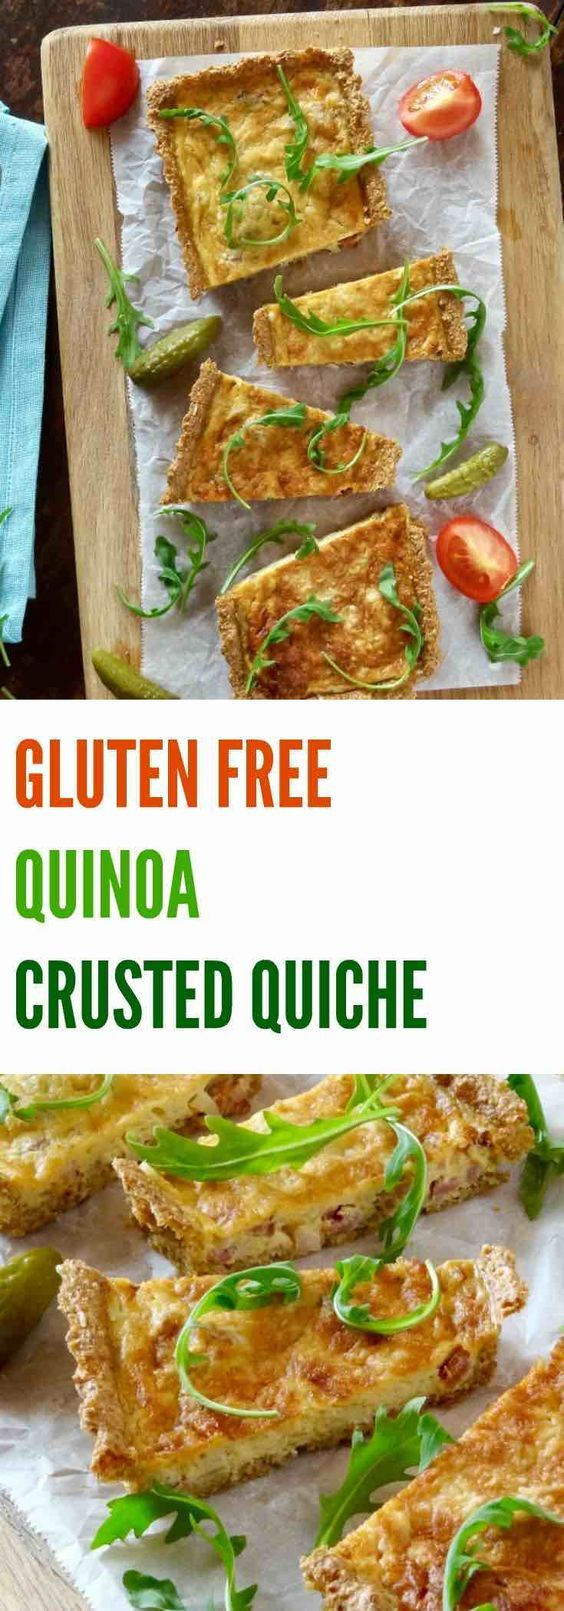 This GLUTEN FREE QUINOA CRUSTED QUICHE is a healthier alternative to a traditional quiche. You're guaranteed a crispy 'pastry' every time | Plus Ate Six